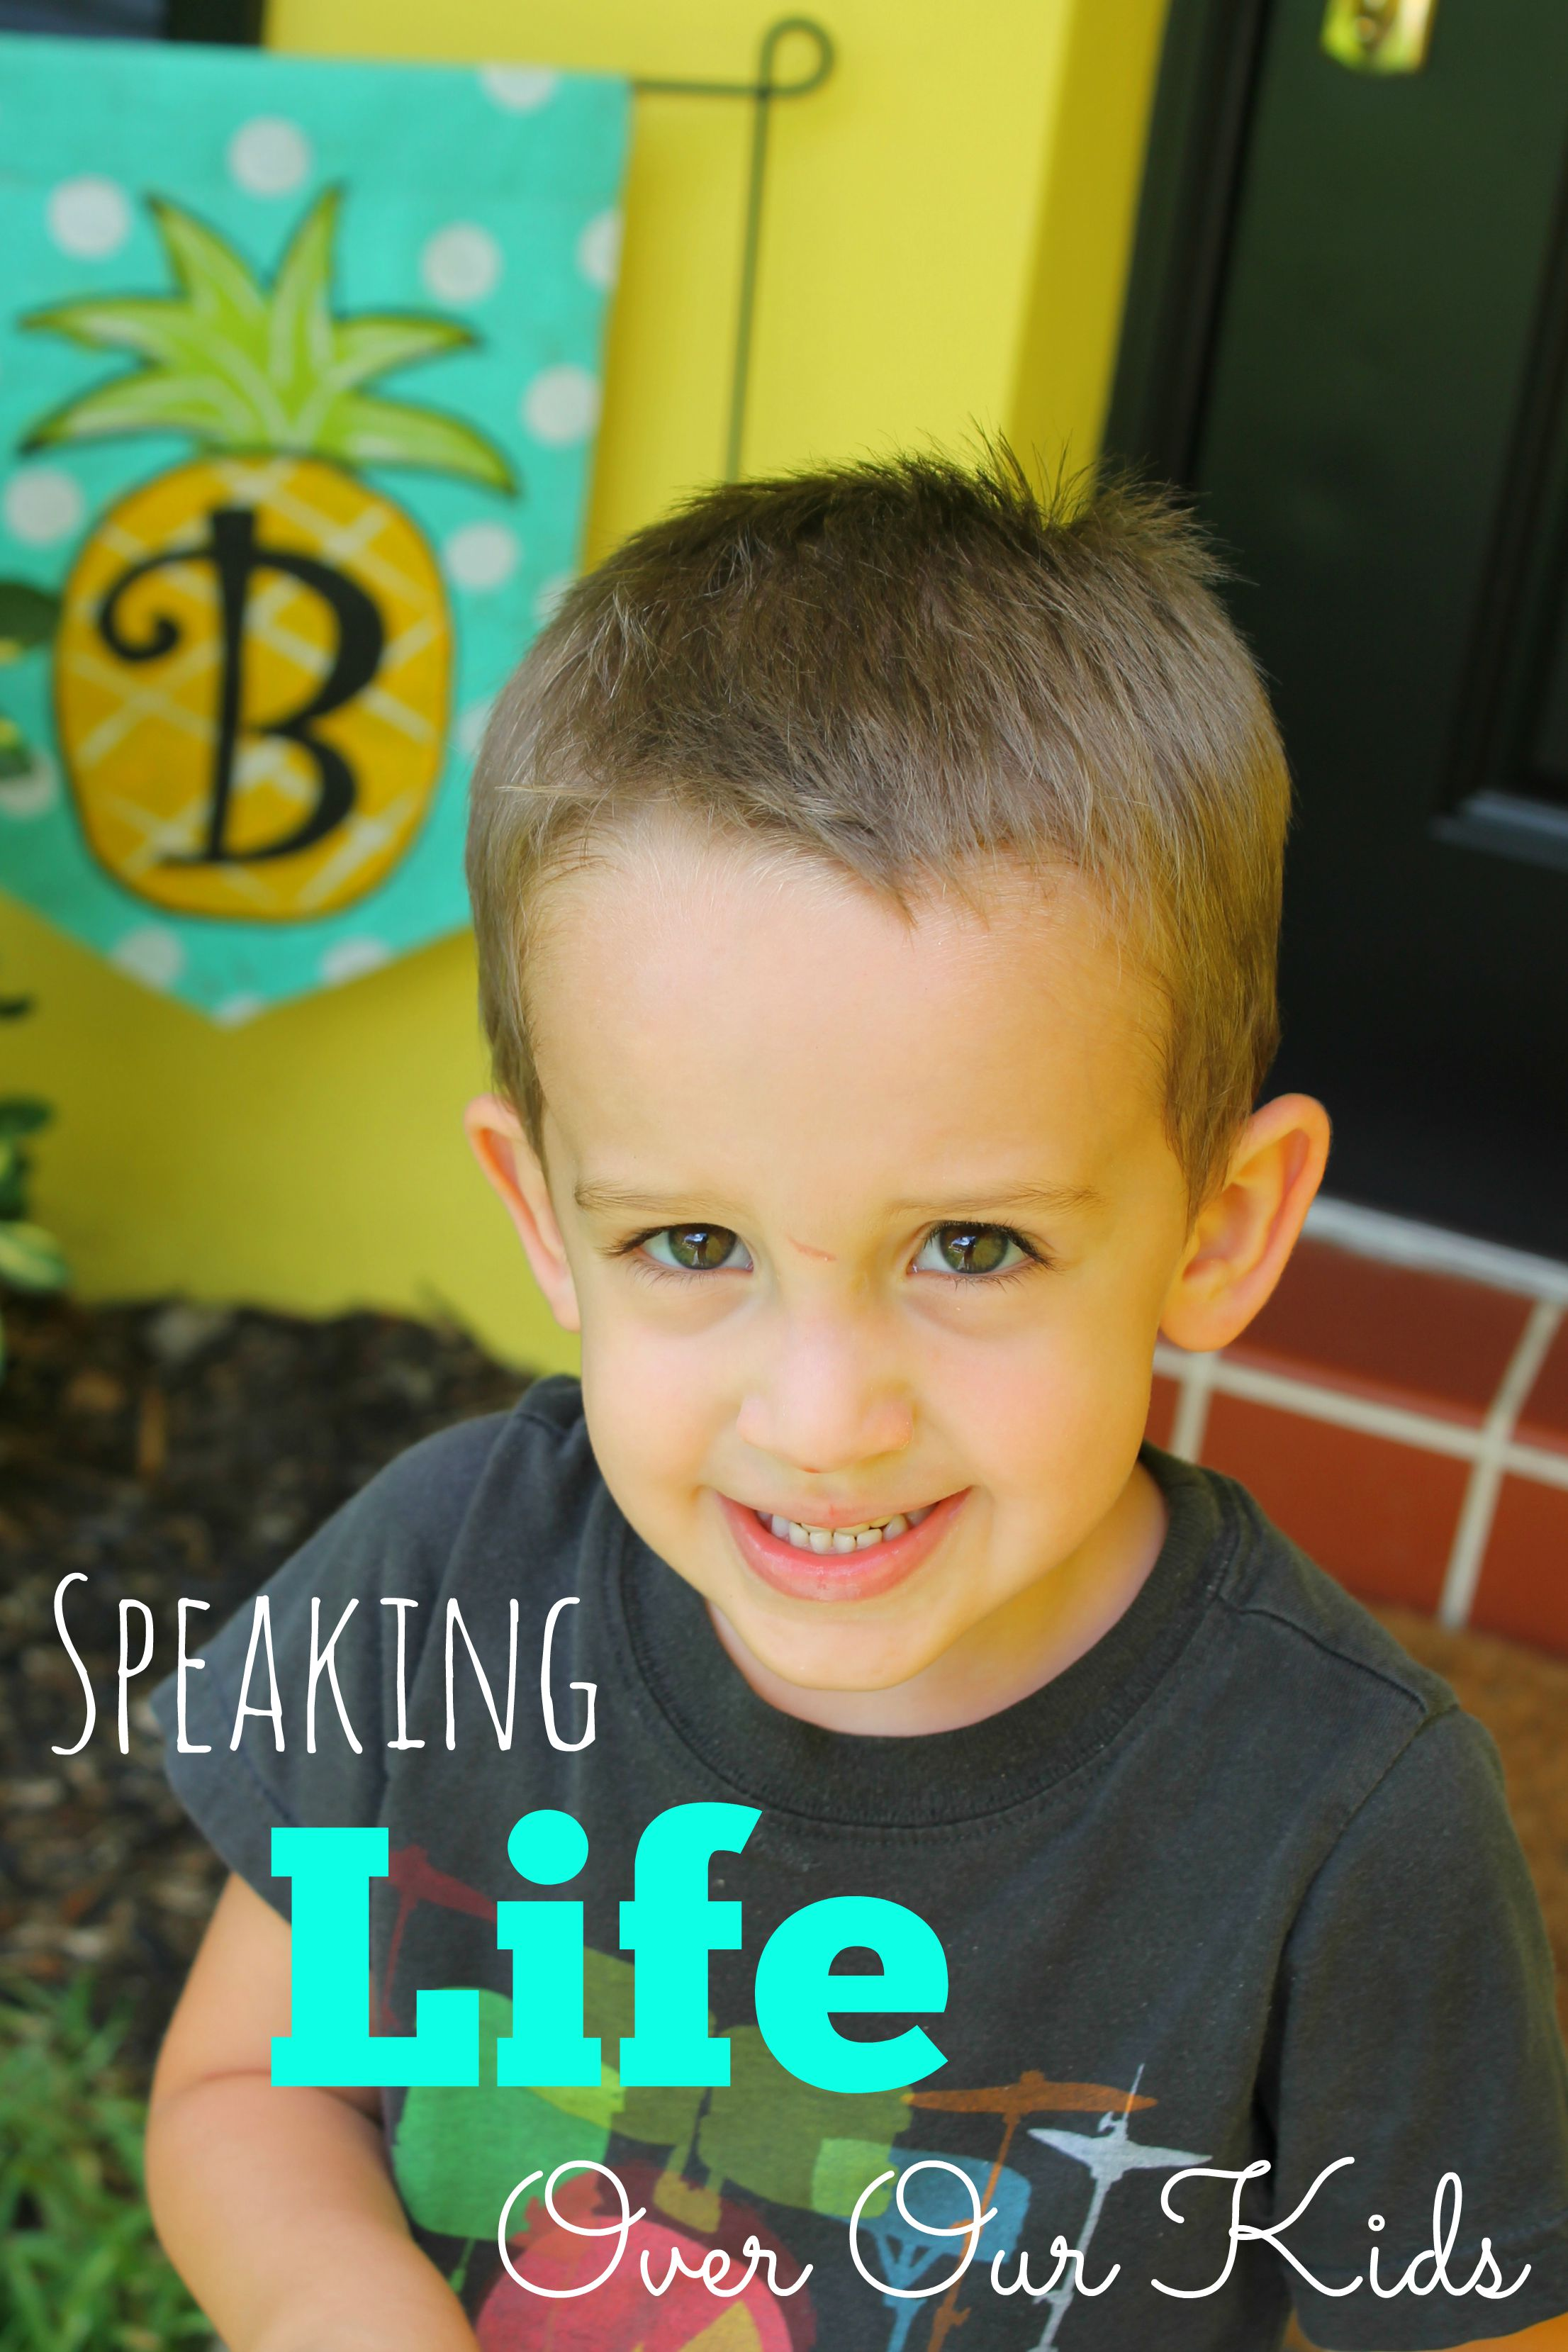 20 Little Phrases to Speak Life Over Your Kids